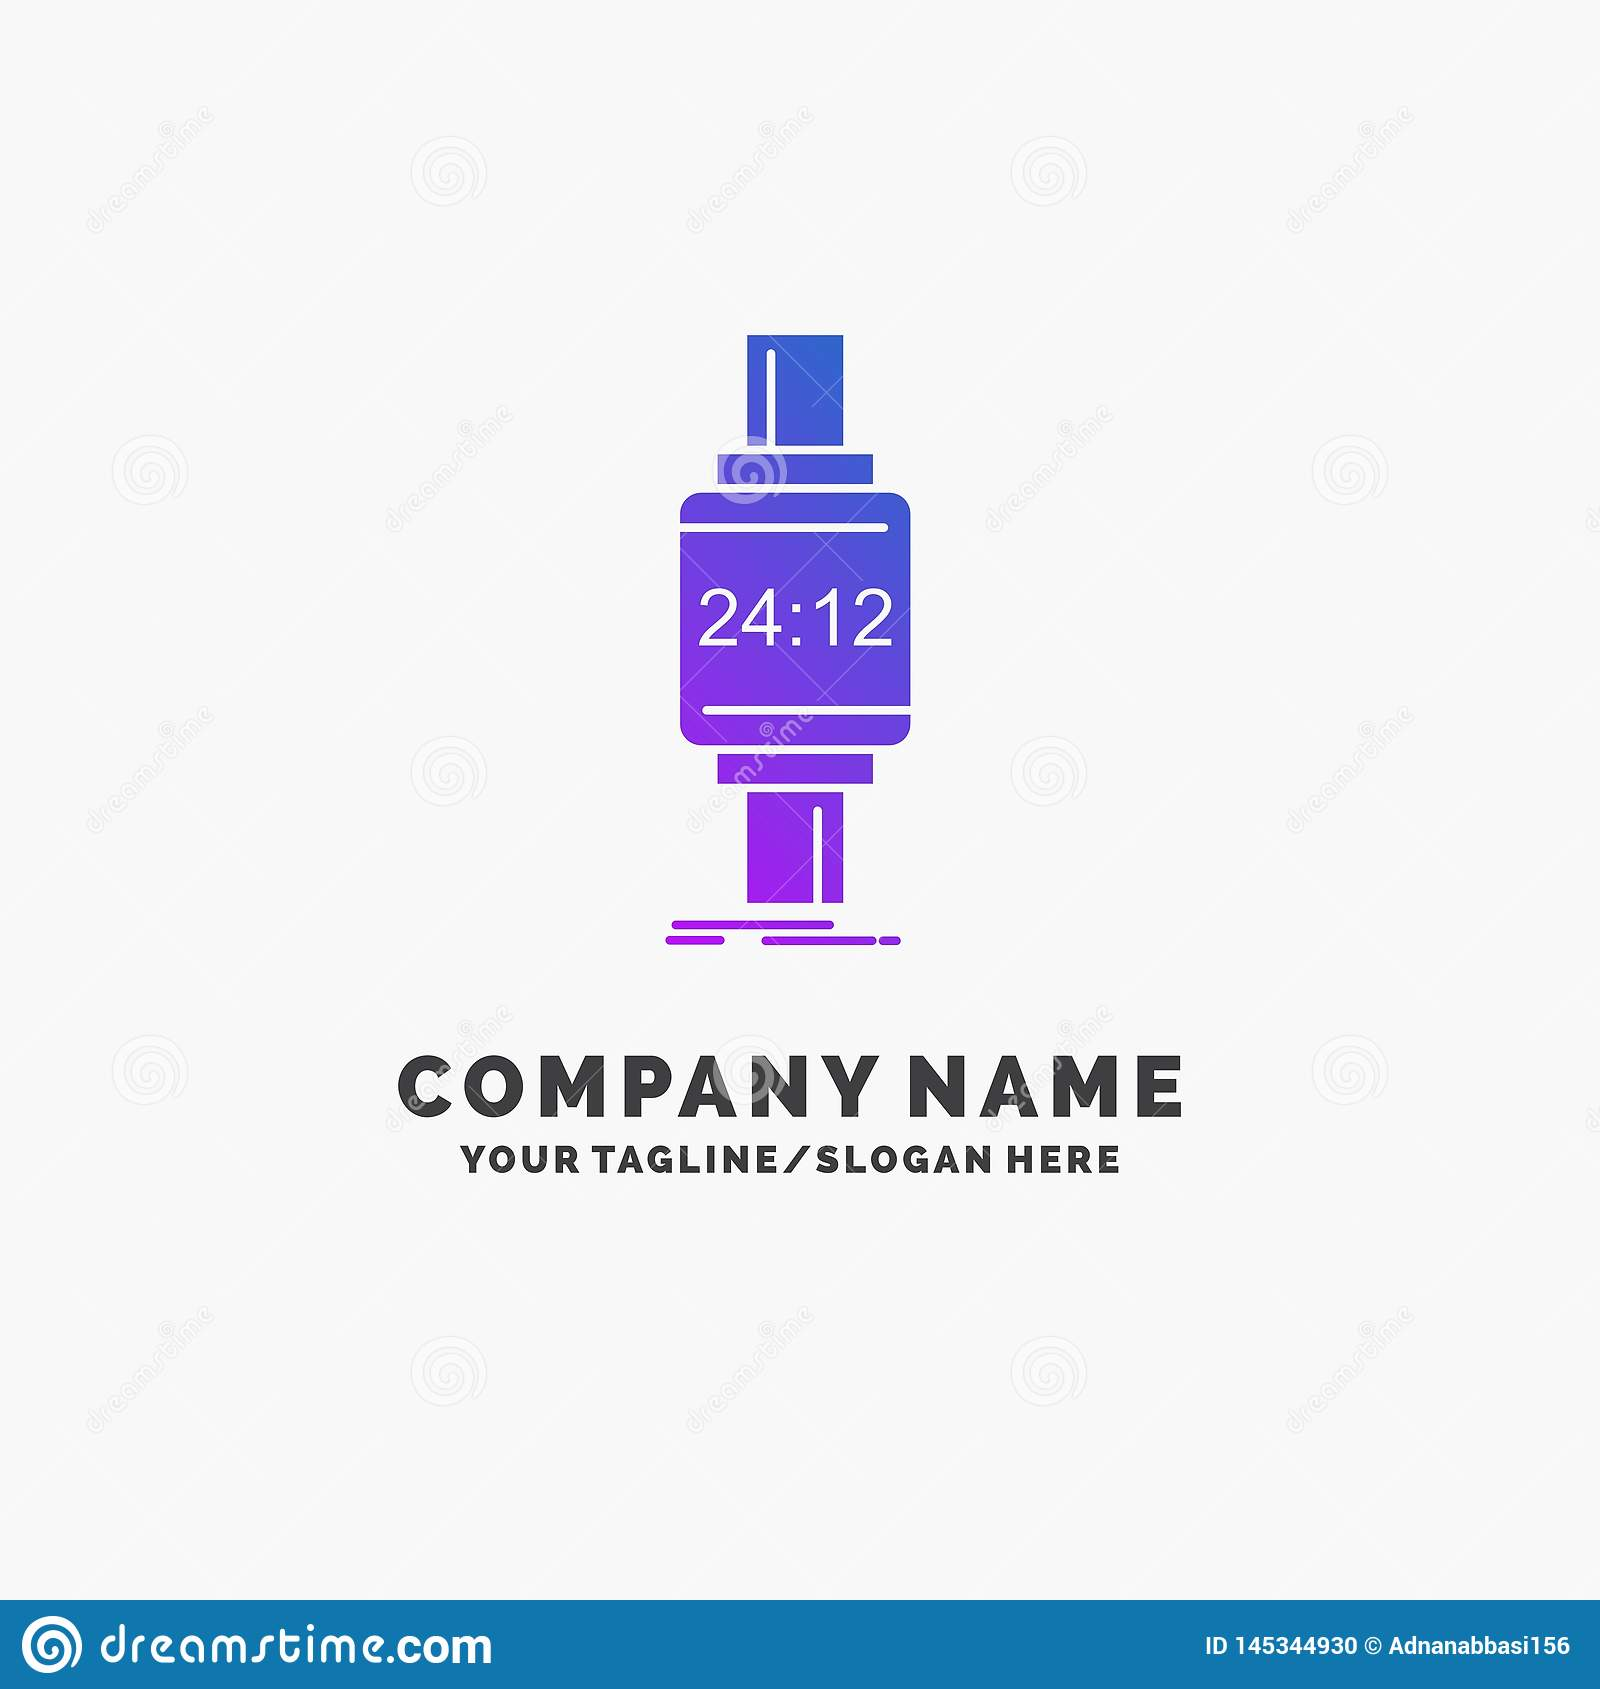 Company logos and their taglines for dating